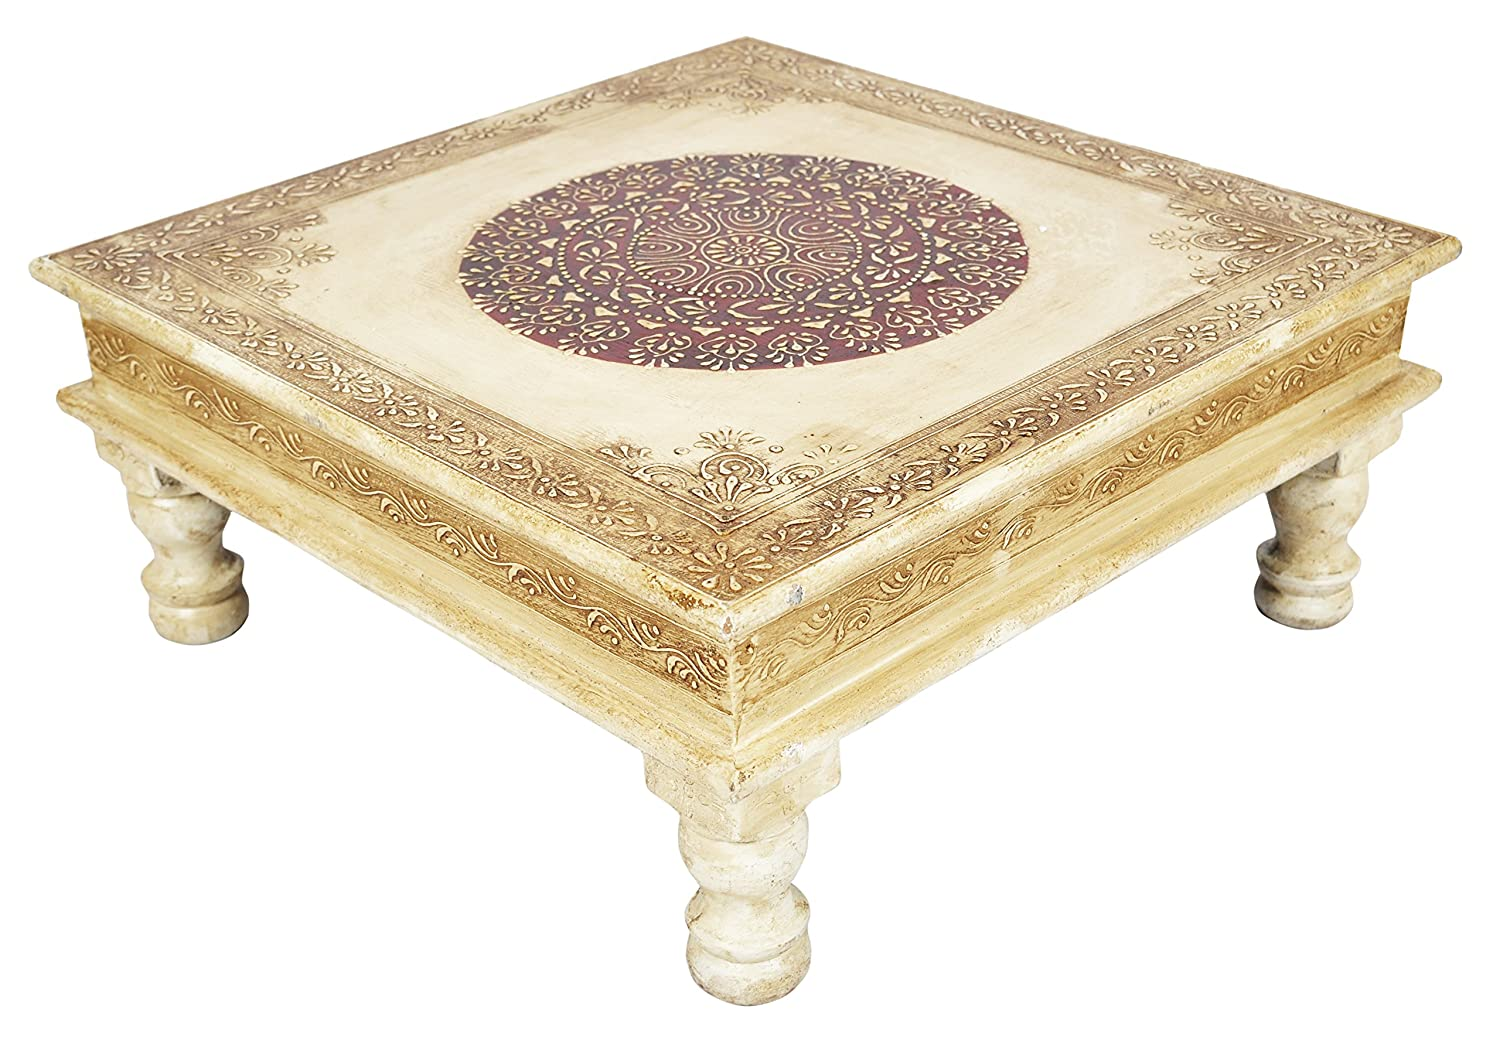 Amazon rajasthani handpainted wooden decorative bajot table amazon rajasthani handpainted wooden decorative bajot table 15 x 15 x 65 inches kitchen dining geotapseo Image collections